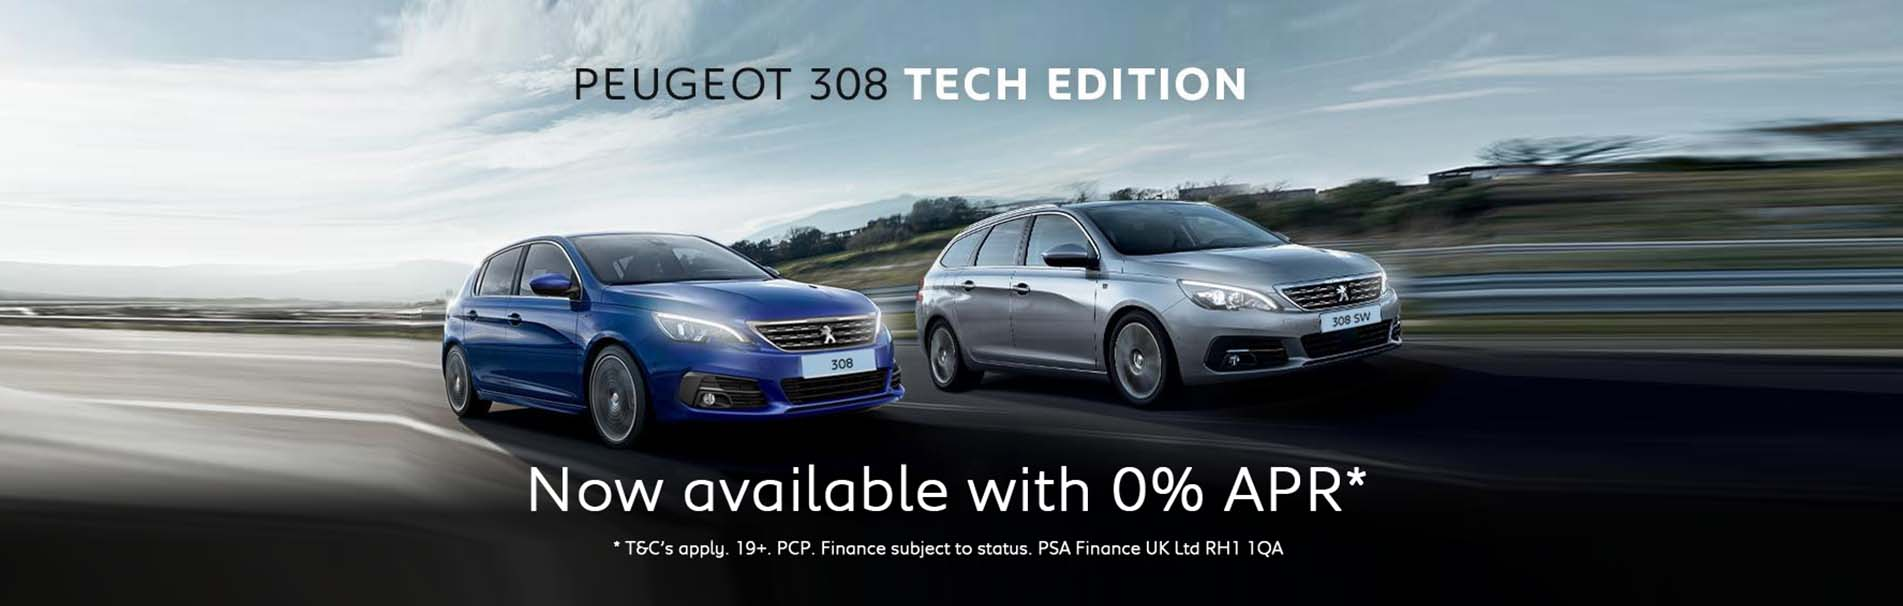 peugeot-308-tech-edition-zero-percent-apr-sli